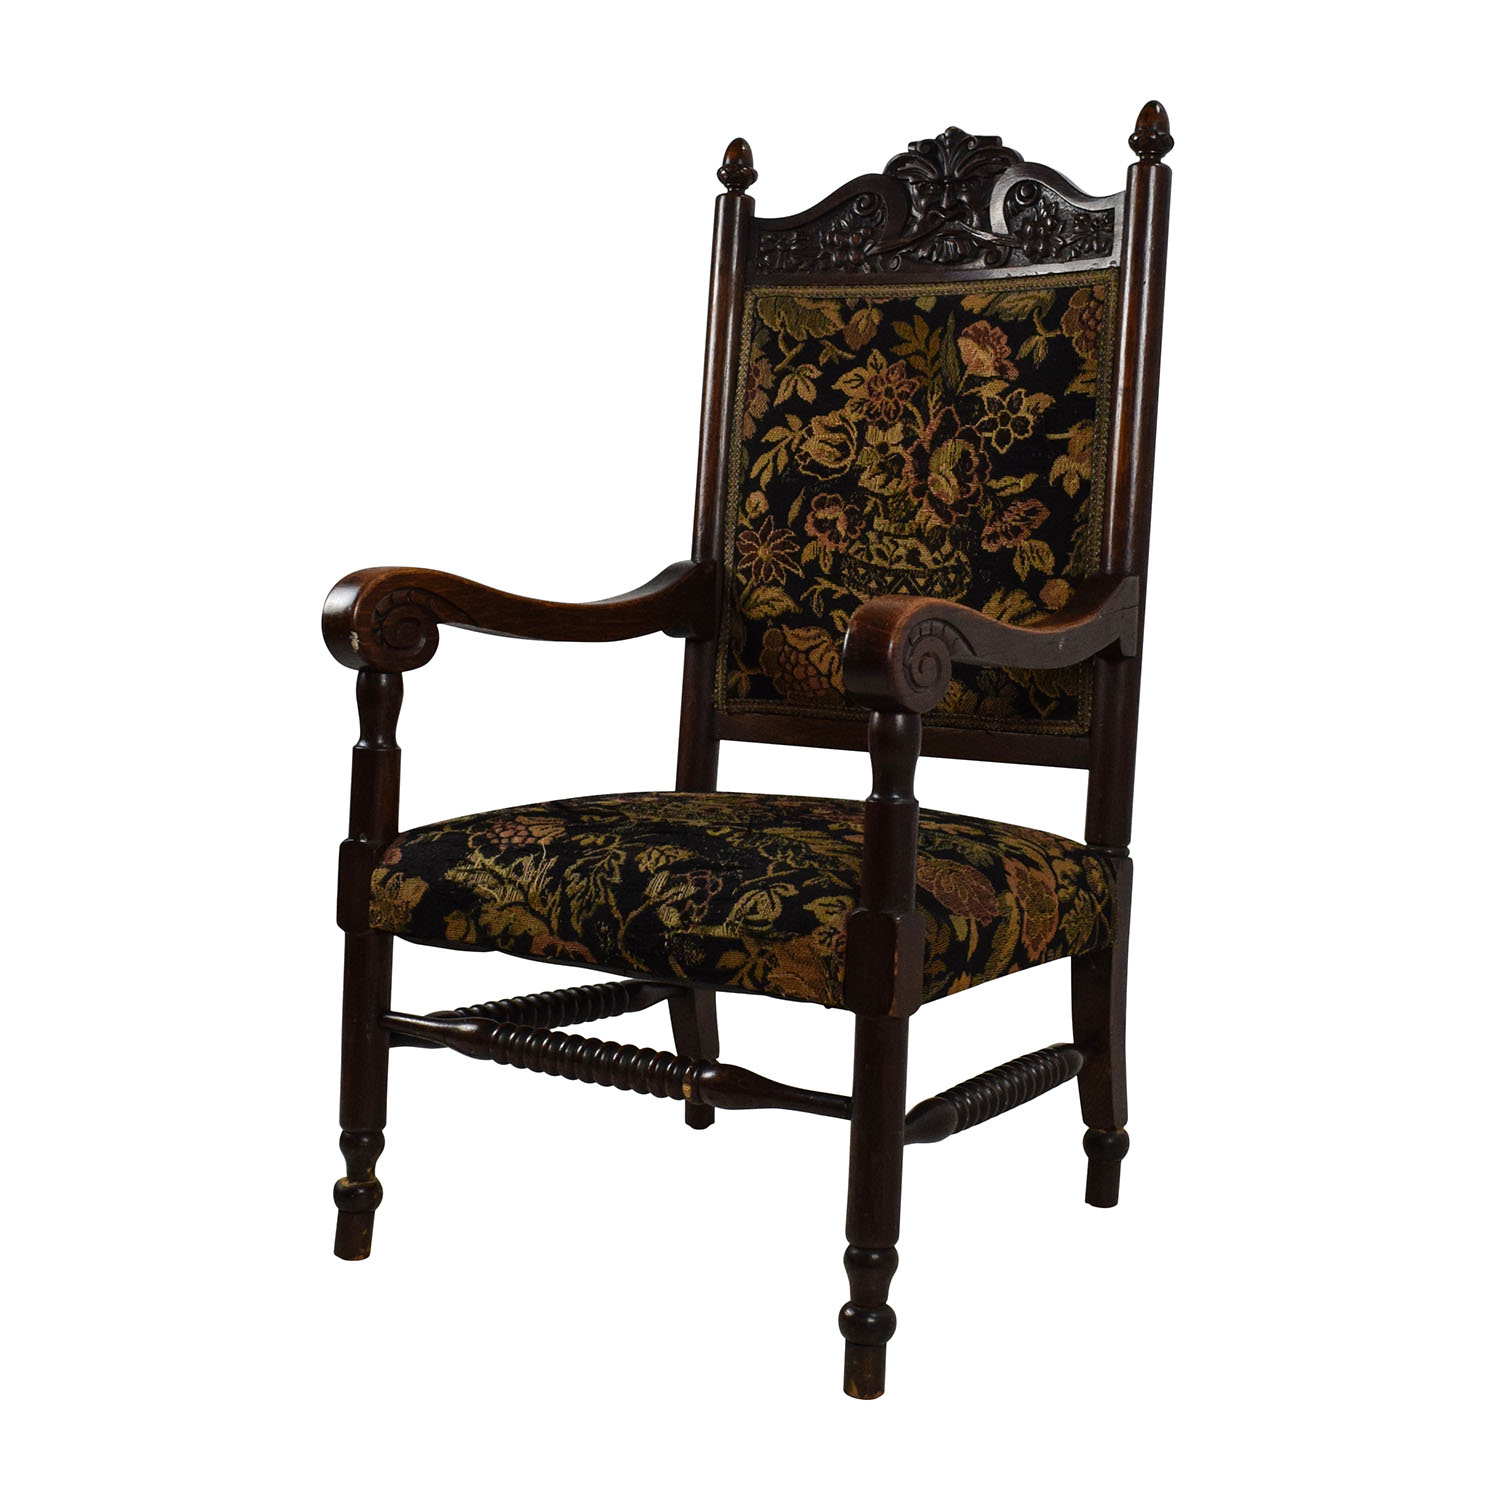 Buy Vintage Furniture: Antique Tudor Upholstered Chair / Chairs